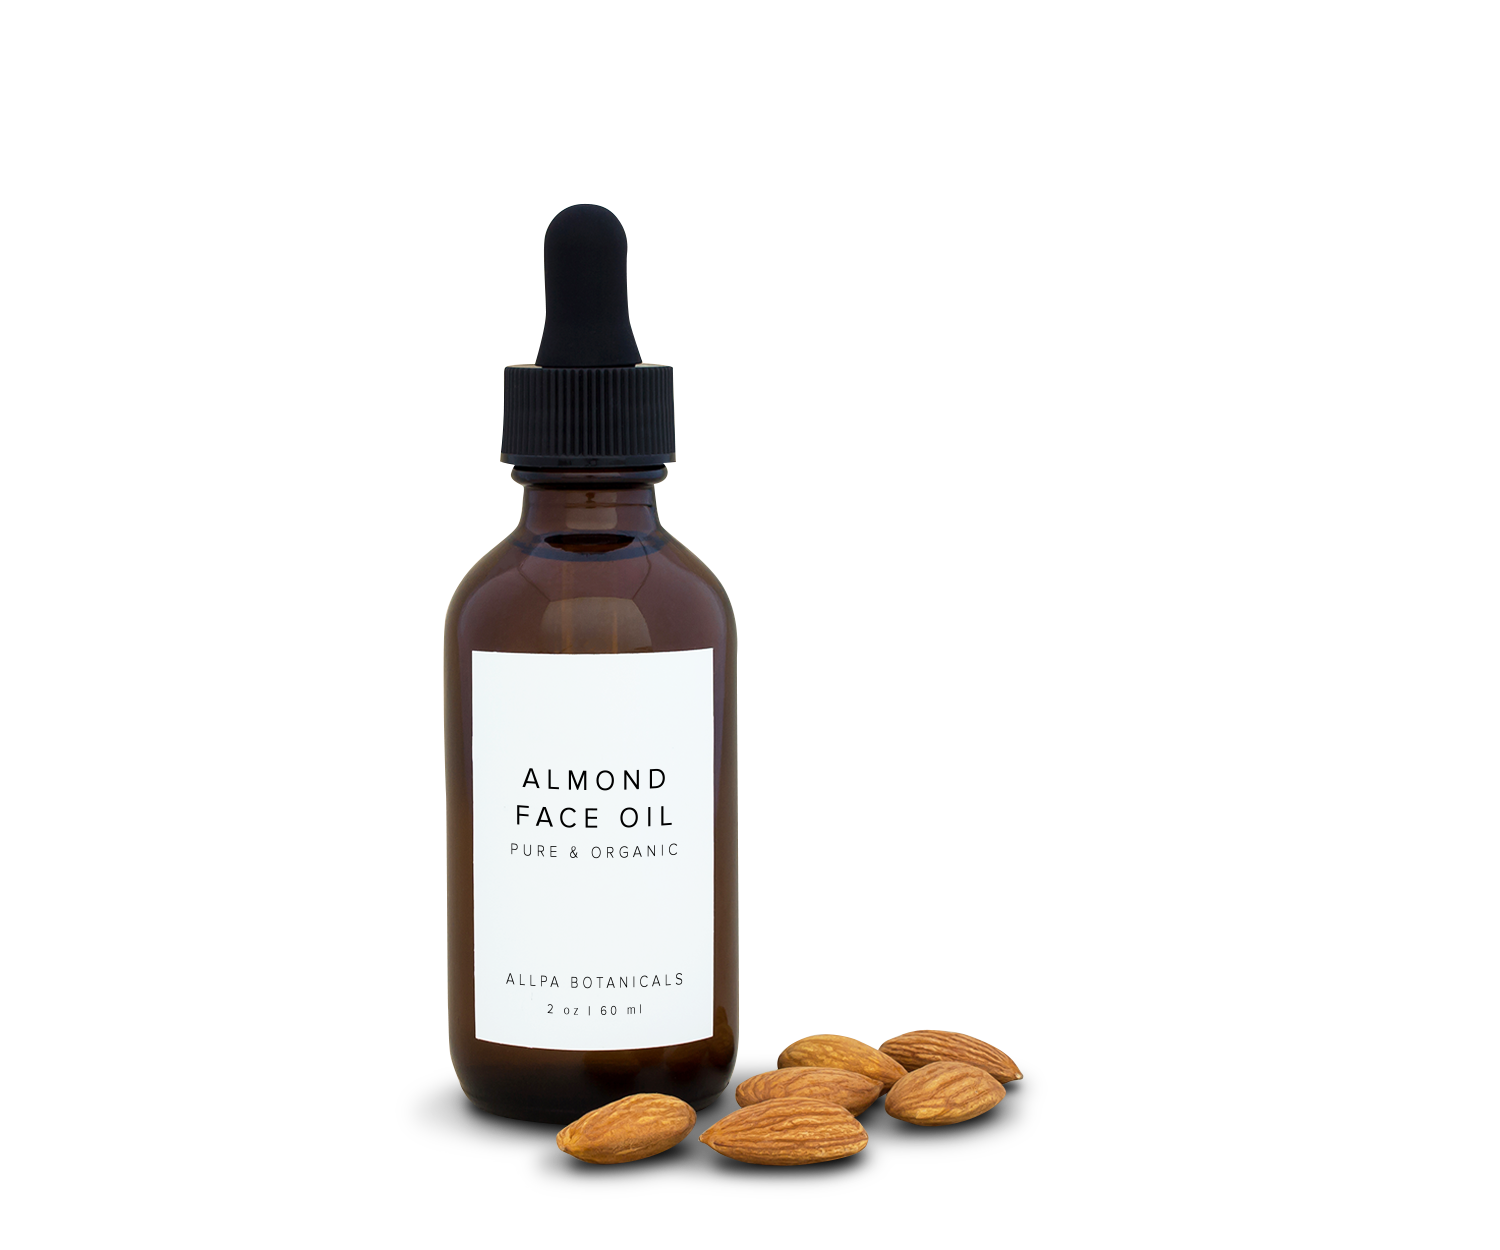 Almond Face Oil